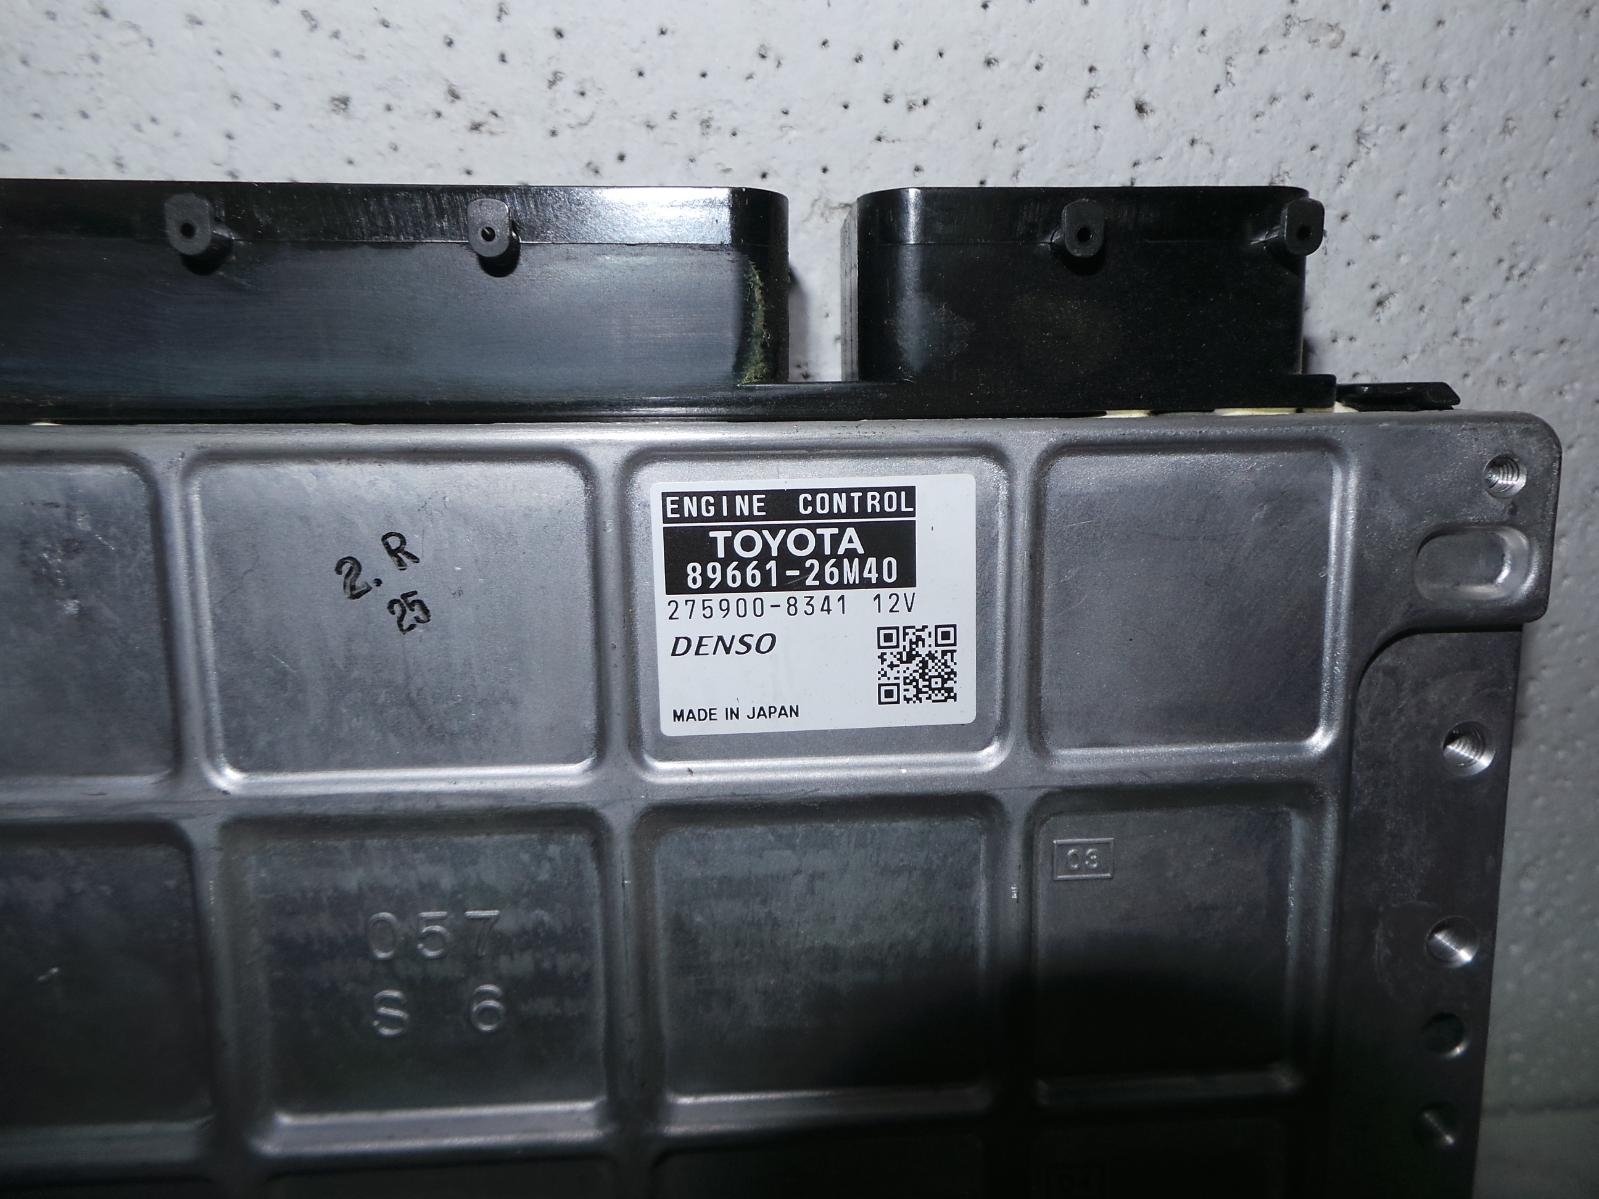 TOYOTA HIACE, Ecu, ENGINE ECU, 3.0, 1KD-FTV, DIESEL, P/N 89661-26M40, ECU ONLY, KDH, 09/06-